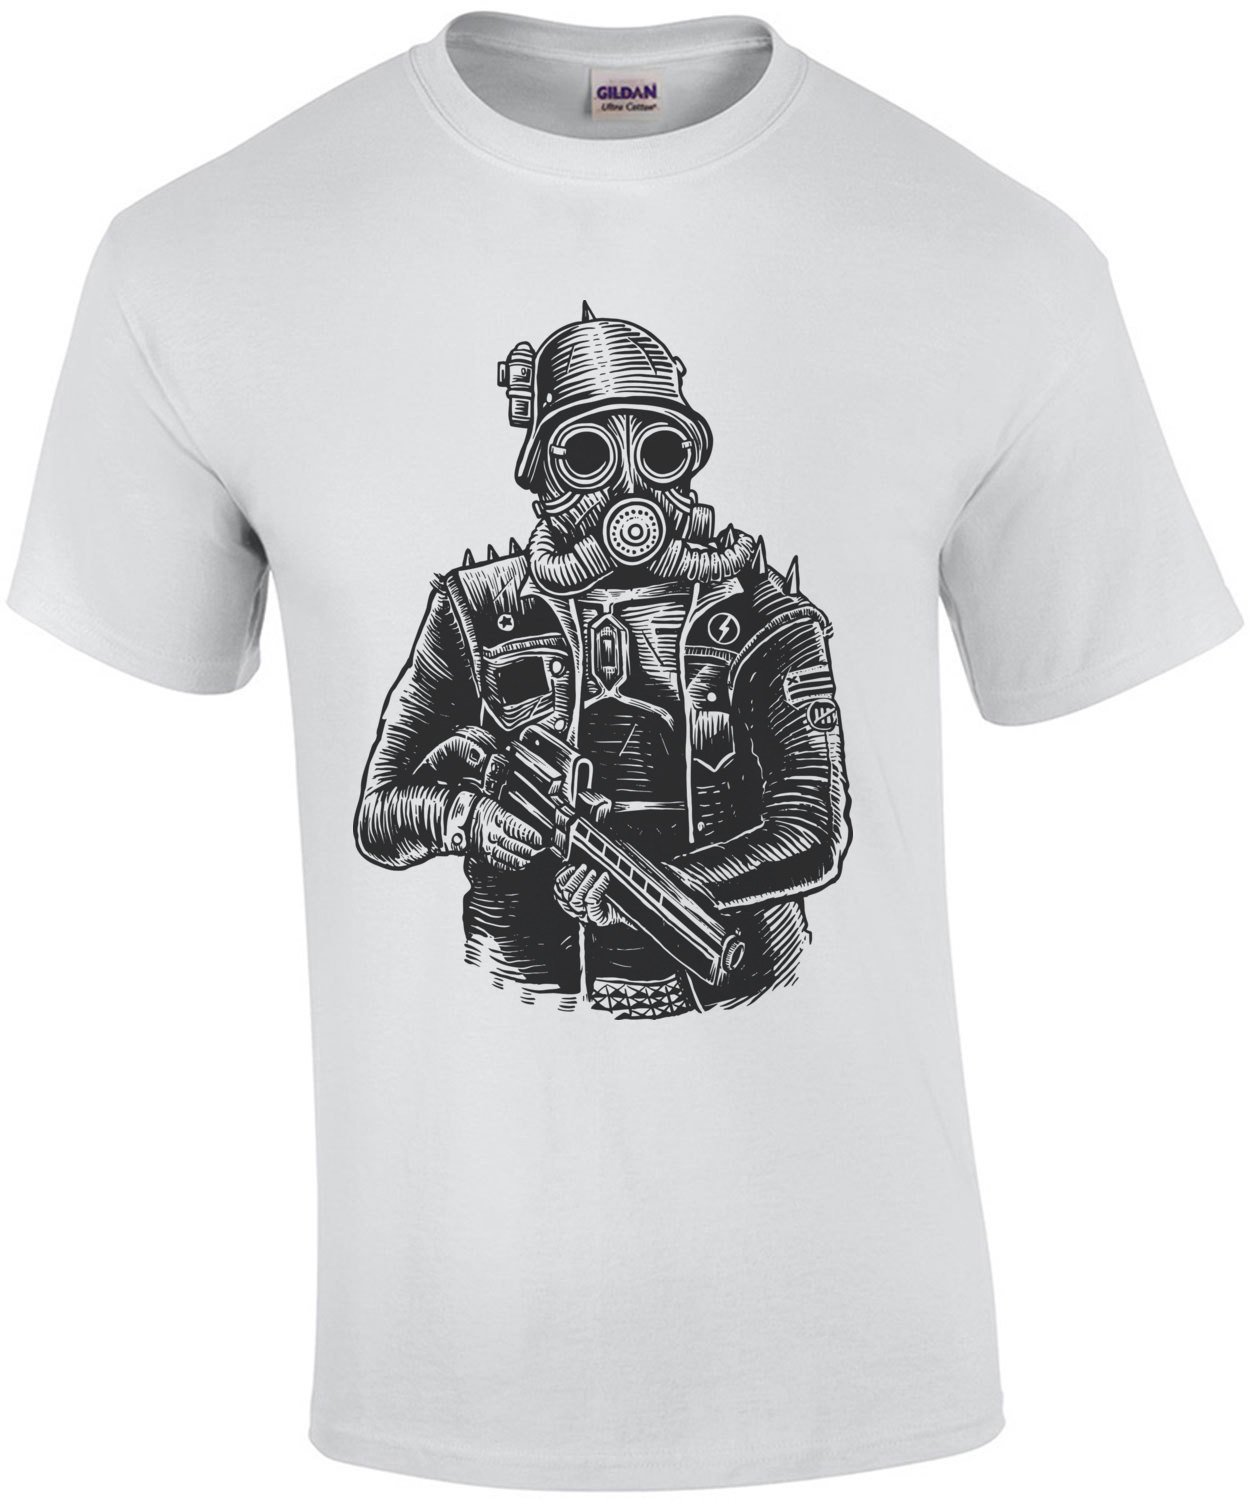 Steampunk Soldier Apocalyptic T-Shirt